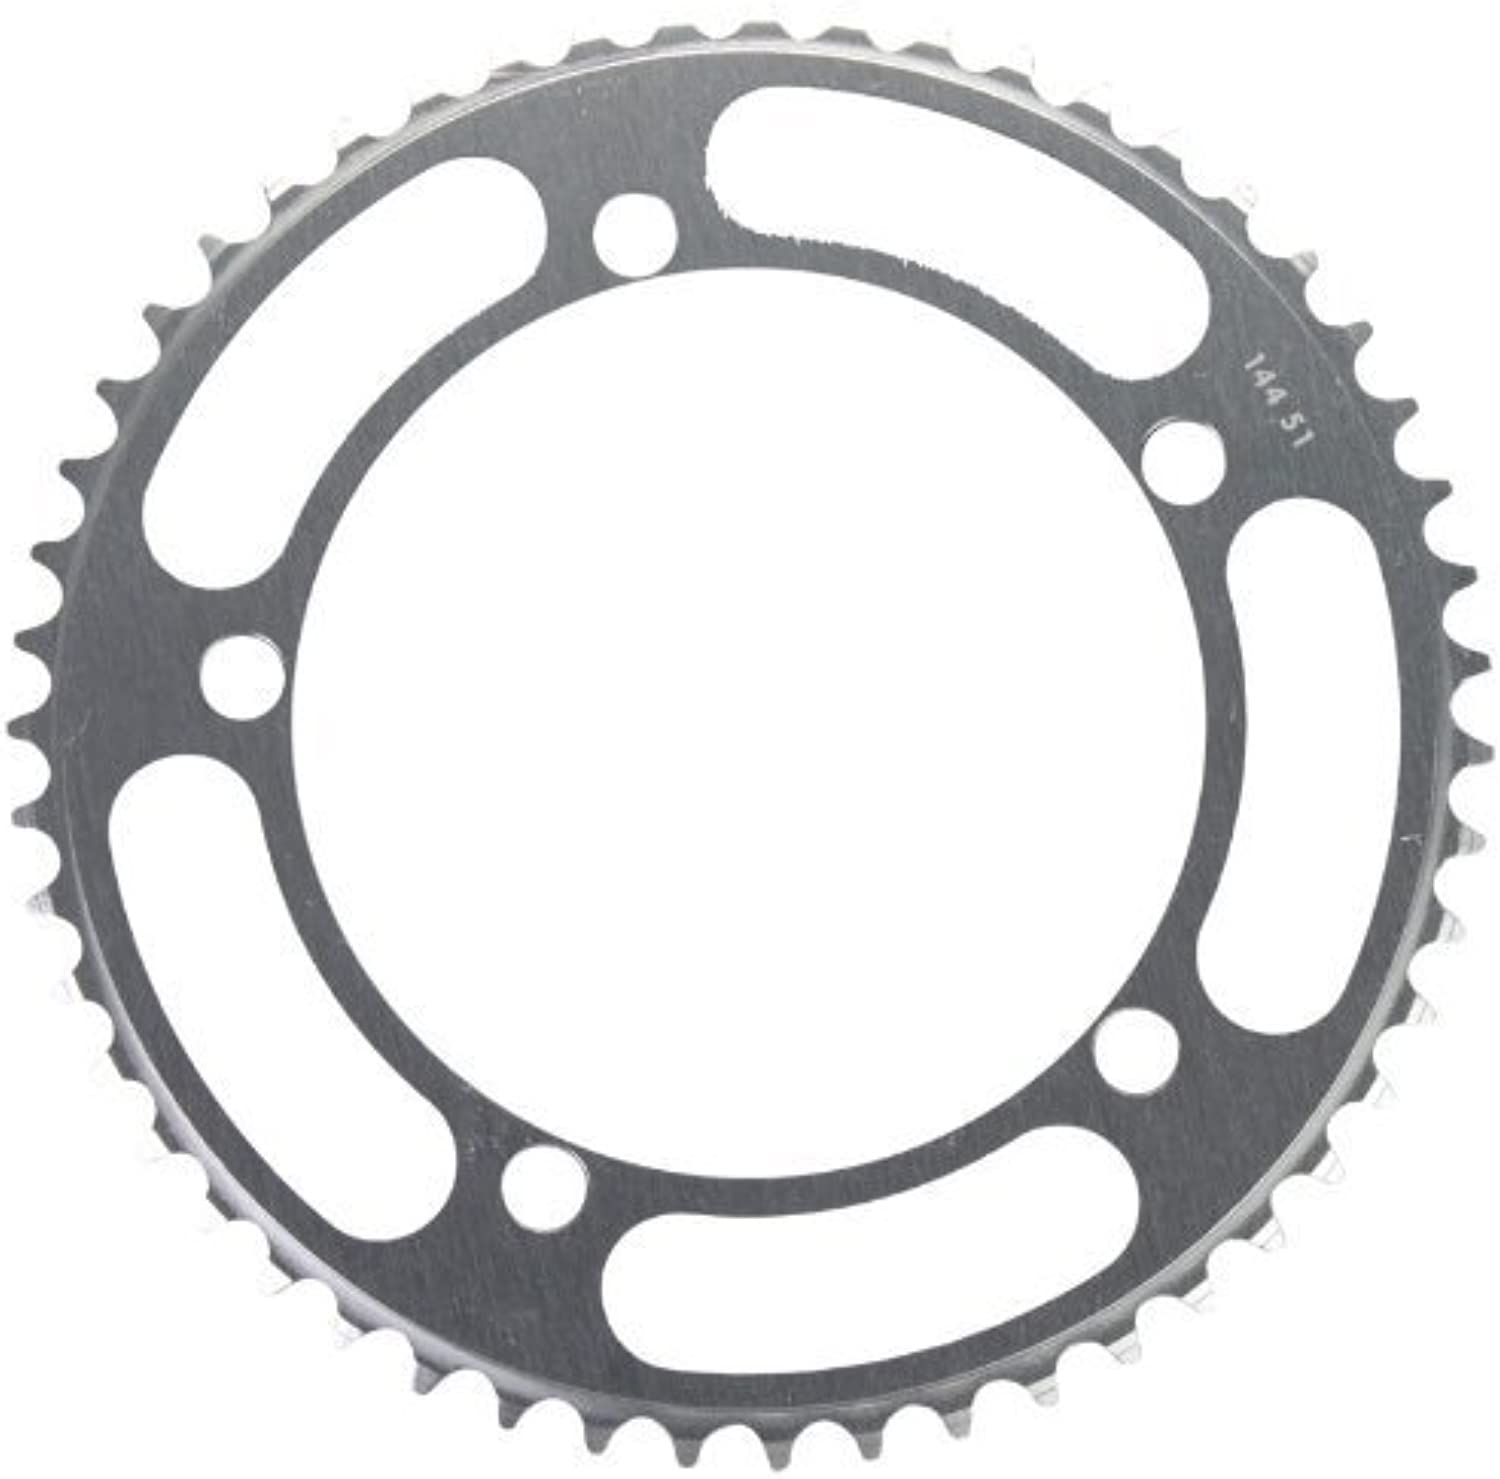 Rocket Alloy Chainring 144mm, 5Bolt 51T Silber 1 8Track Pitch by Rings